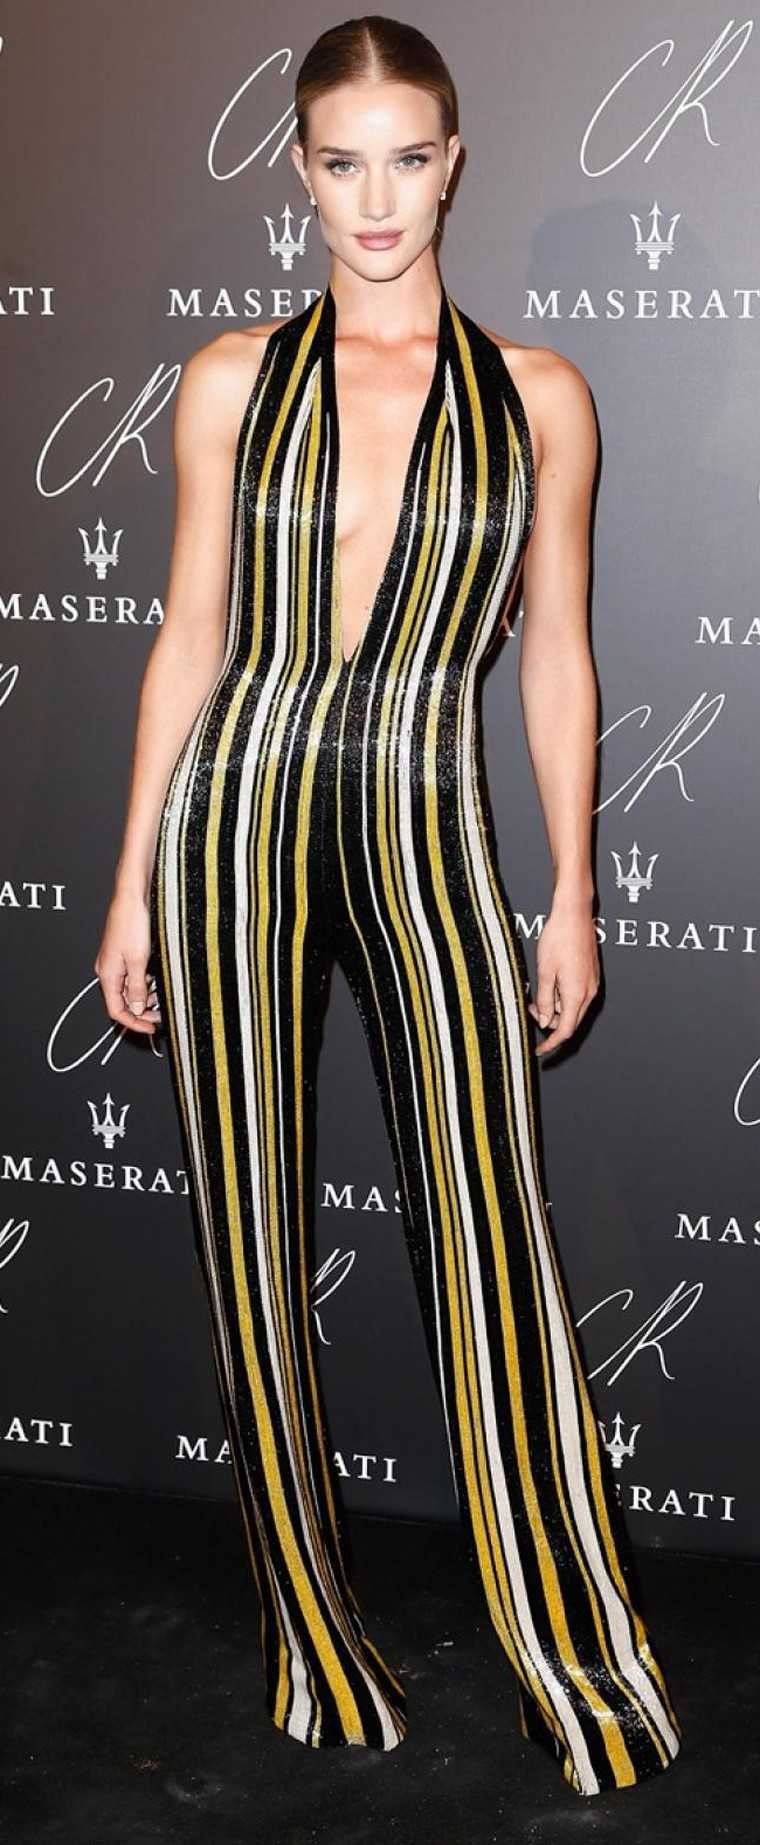 ROSIE HUNTINGTON-WHITELEY: It doesn't take much for this supermodel to look good. A glowing, fresh-faced make-up look and a body-hugging Balmain jumpsuit with honeybee-coloured vertical stripes that show of her height are all she needs.